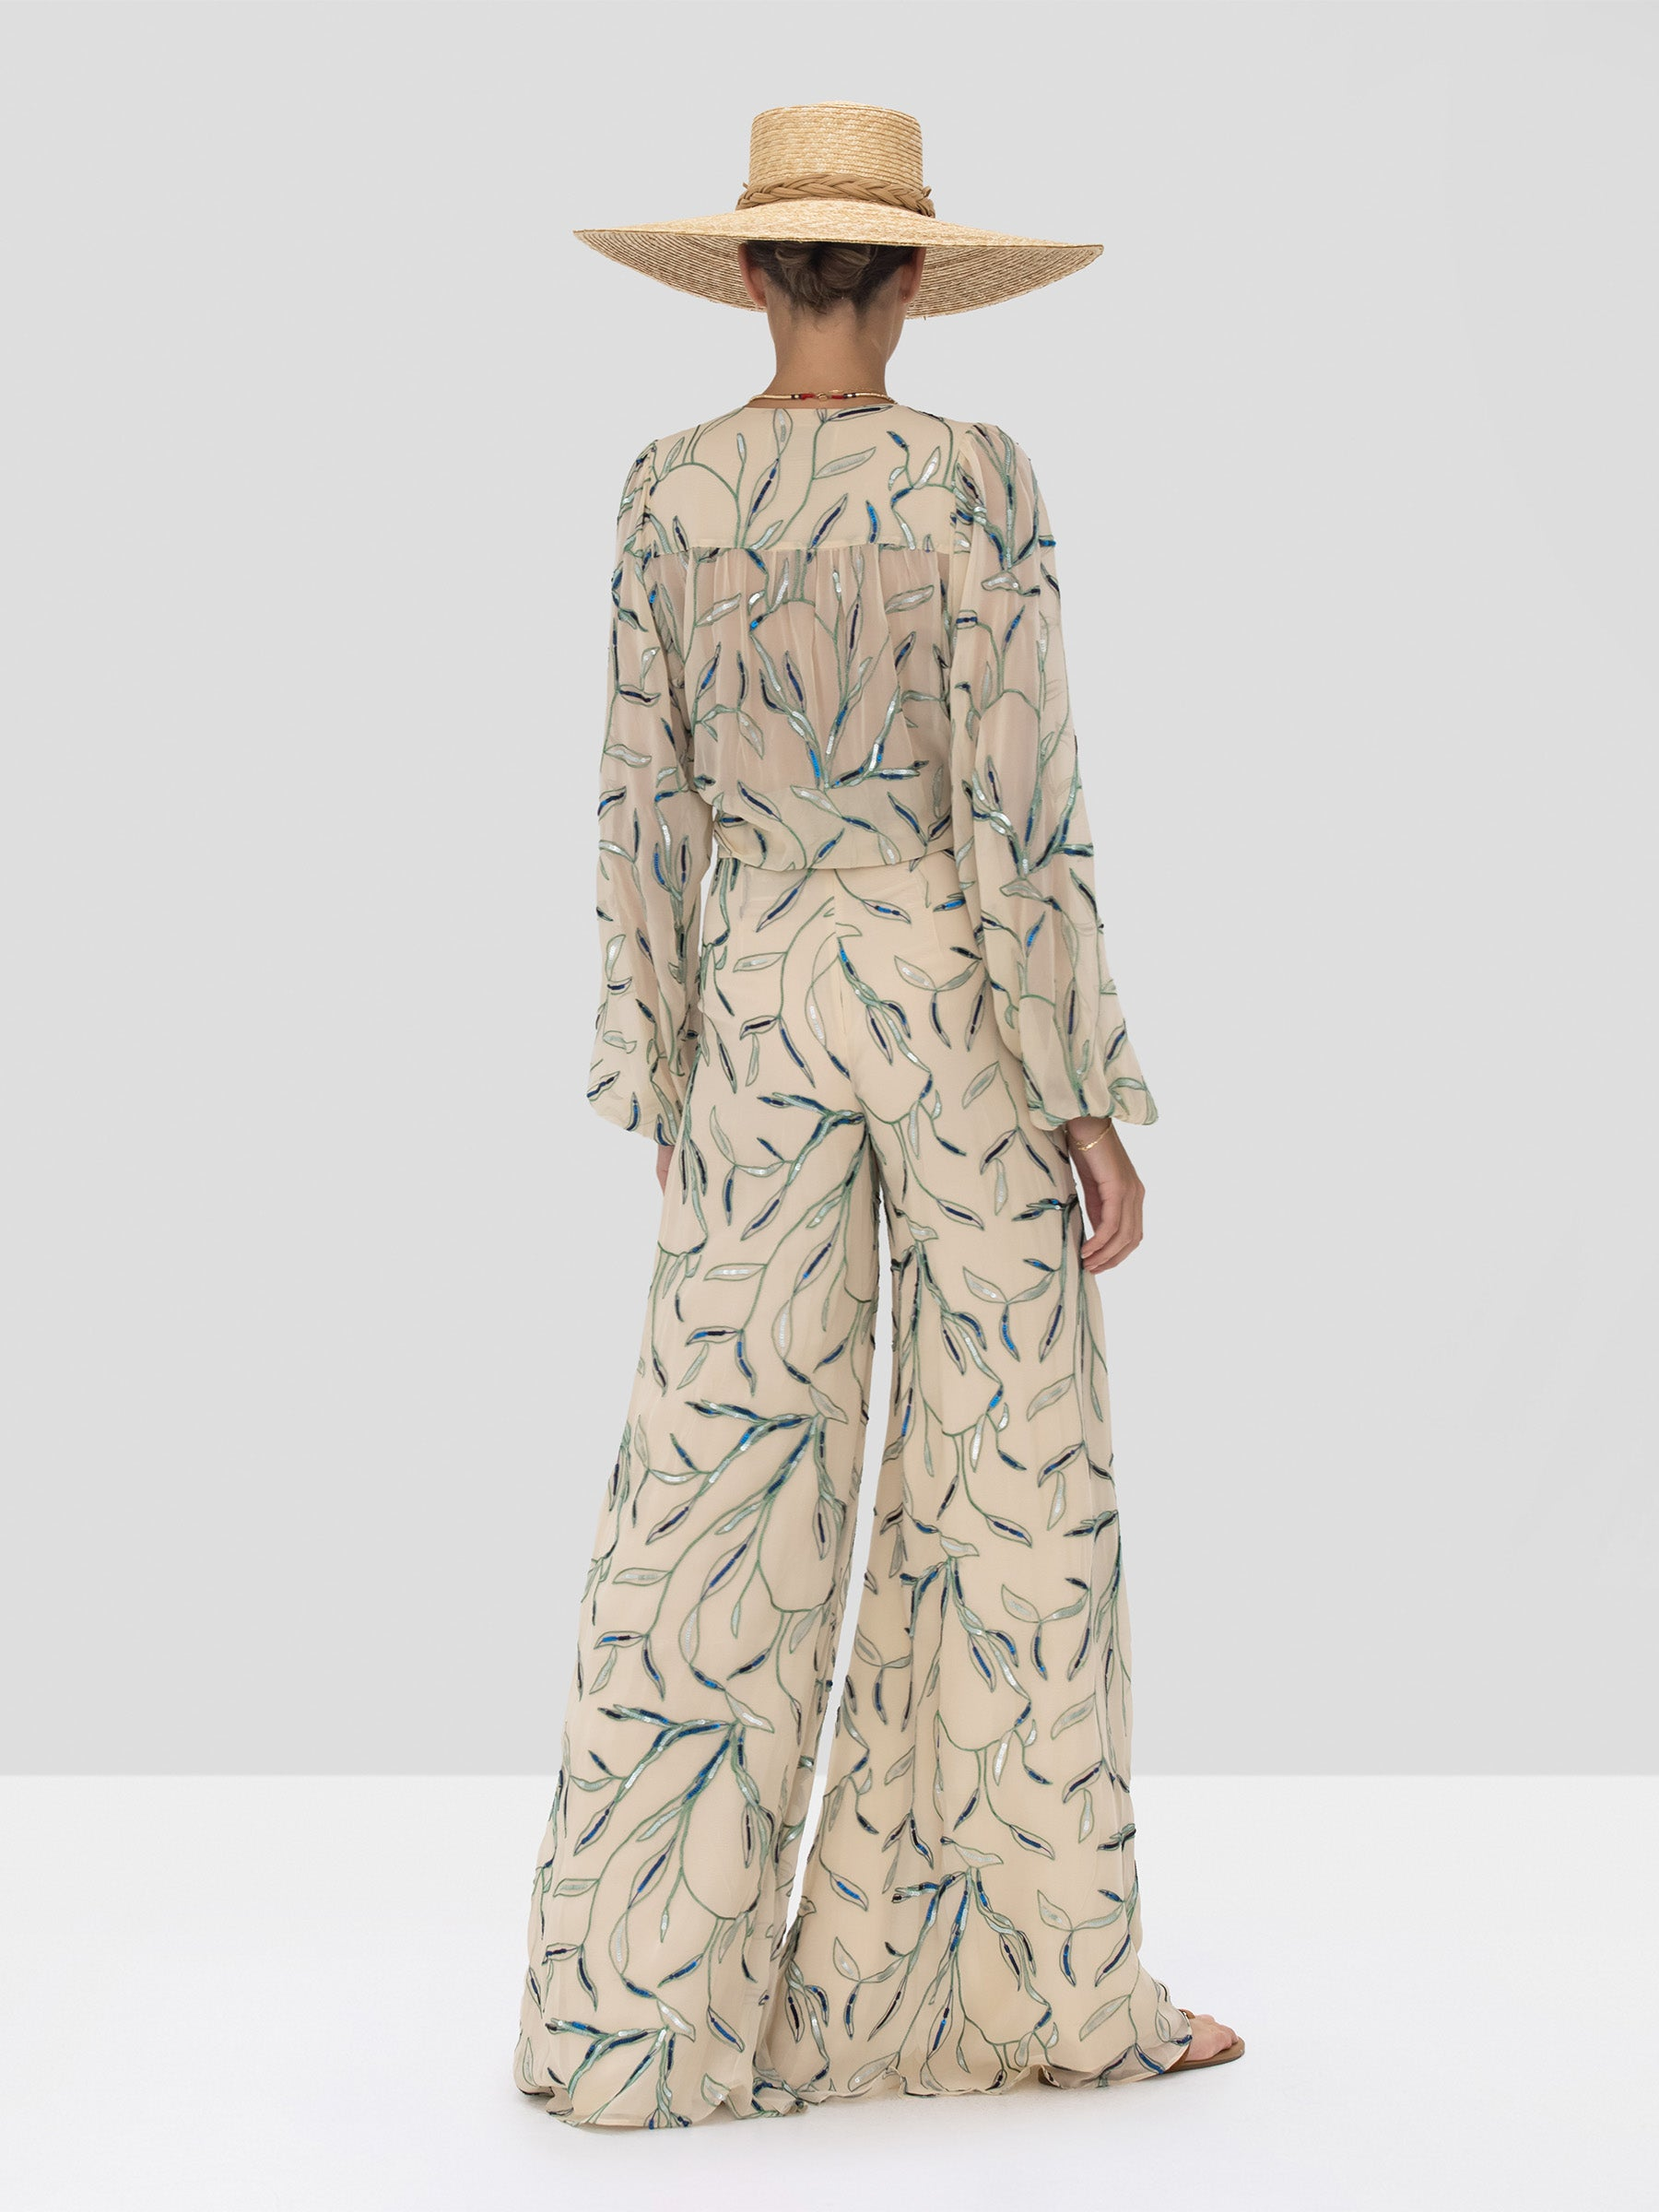 Alexis Valez Top and Fallen Pant in Tan Sequin Embroidery from the Spring Summer 2020 Collection - Rear View